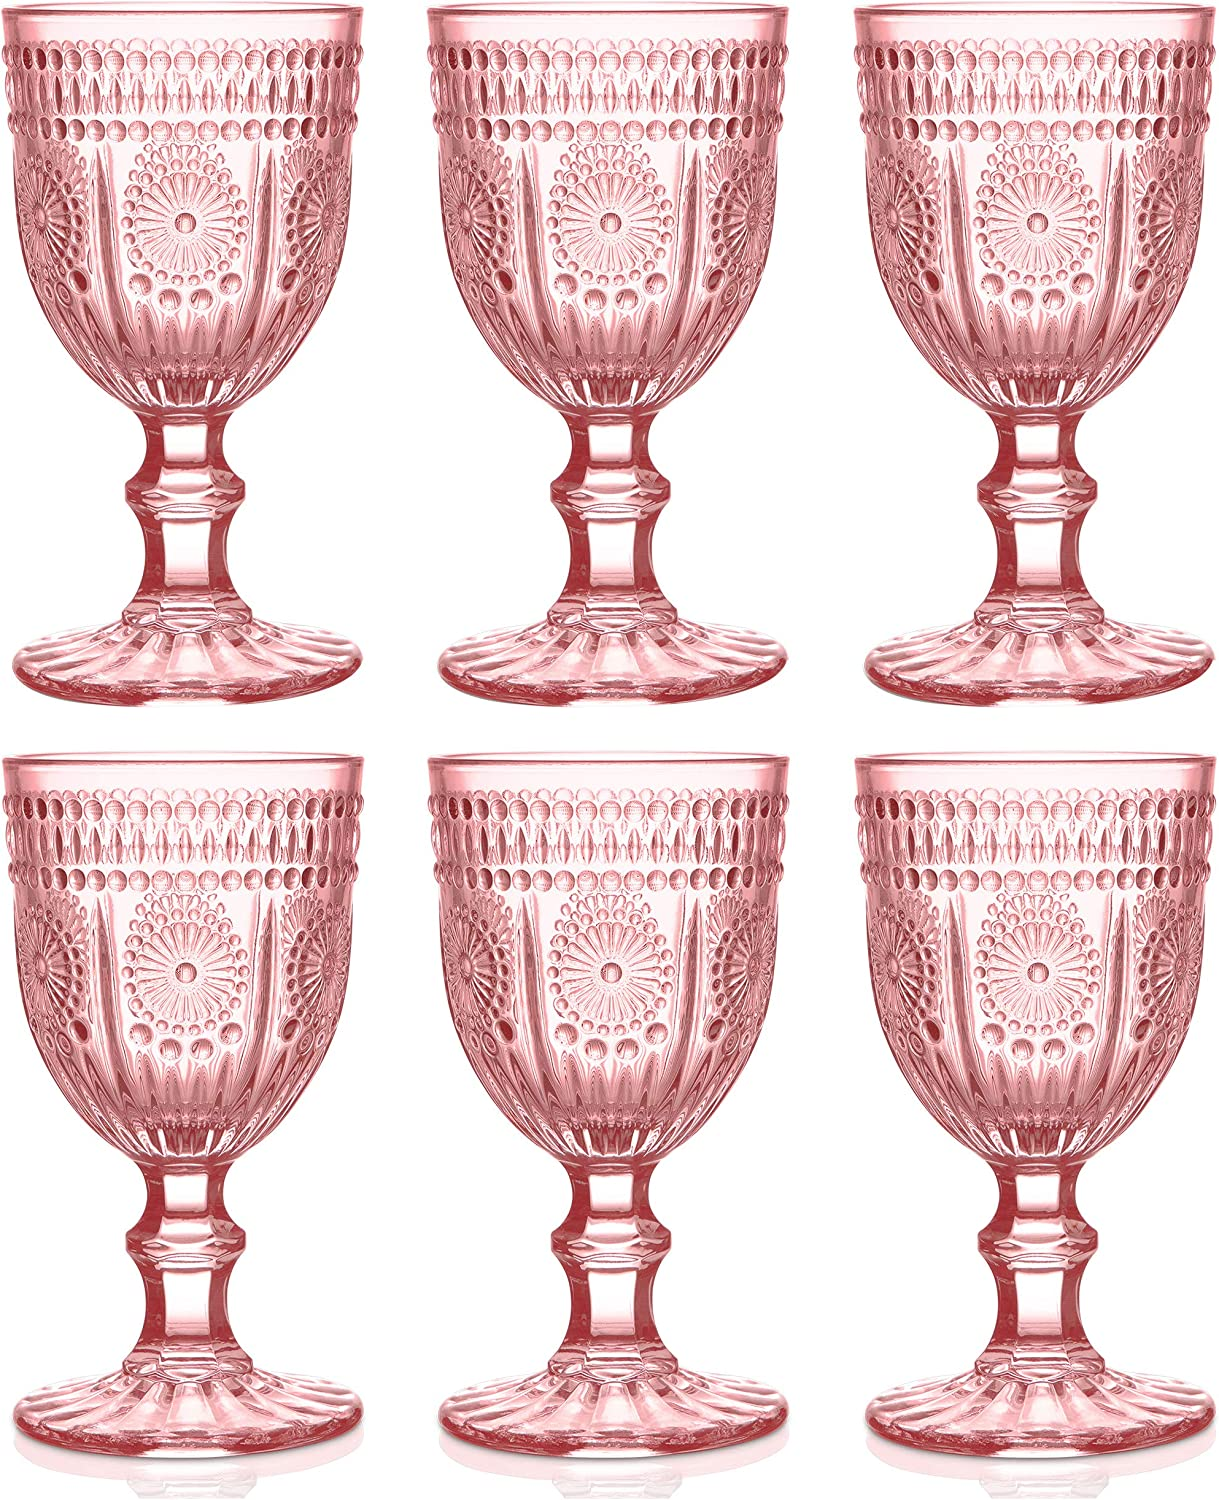 Max 46% Latest item OFF Pink Wine Glasses set of 6 bridesmaid for perfect glassware pink